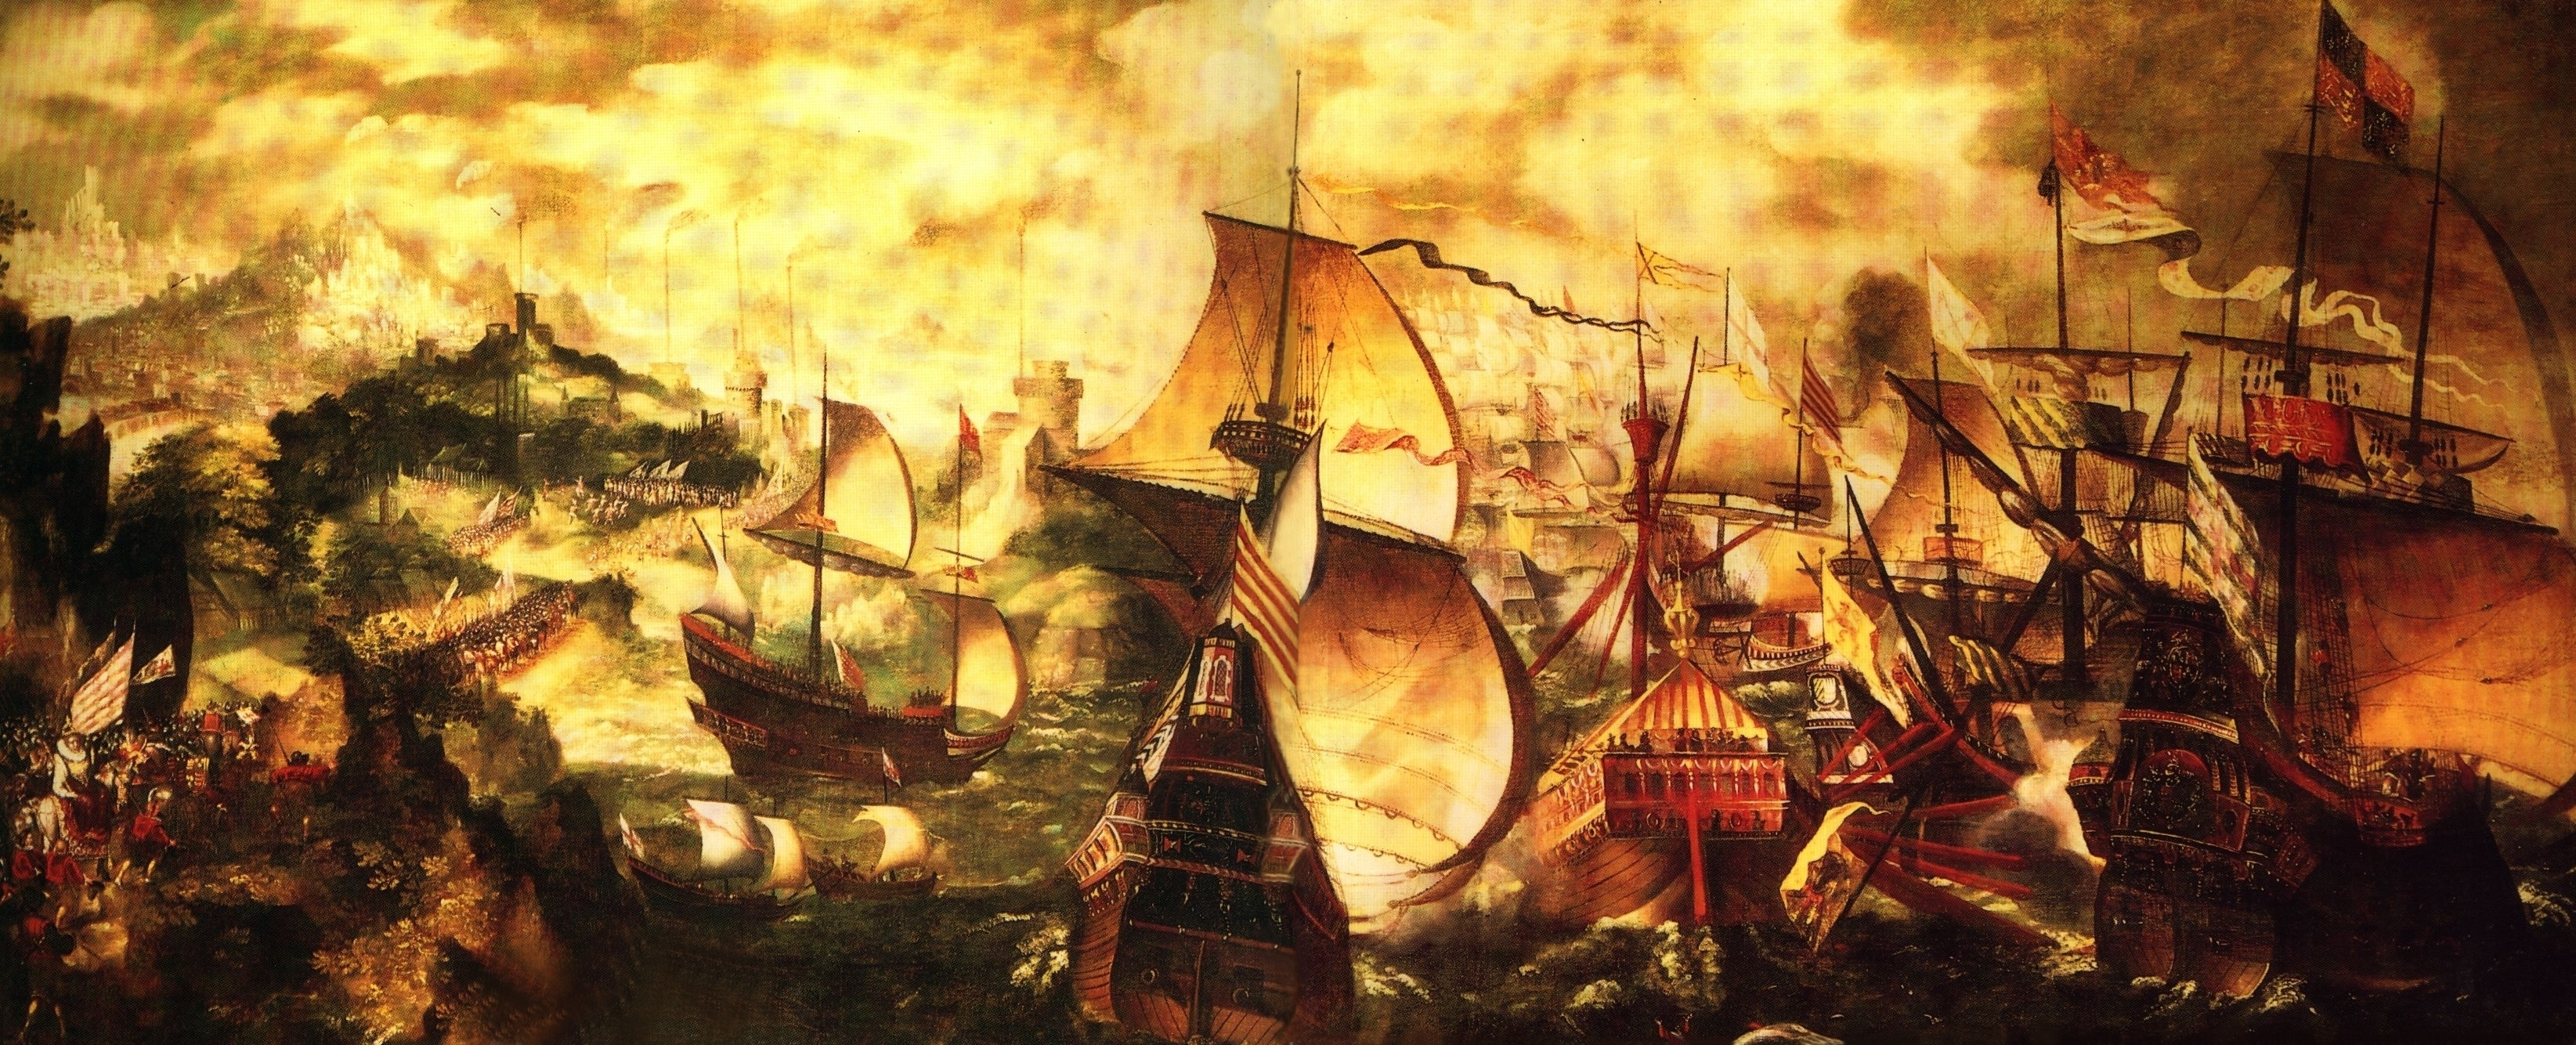 Why did the Spanish & English settle in the Caribbean in the 15th & 16th centuries?